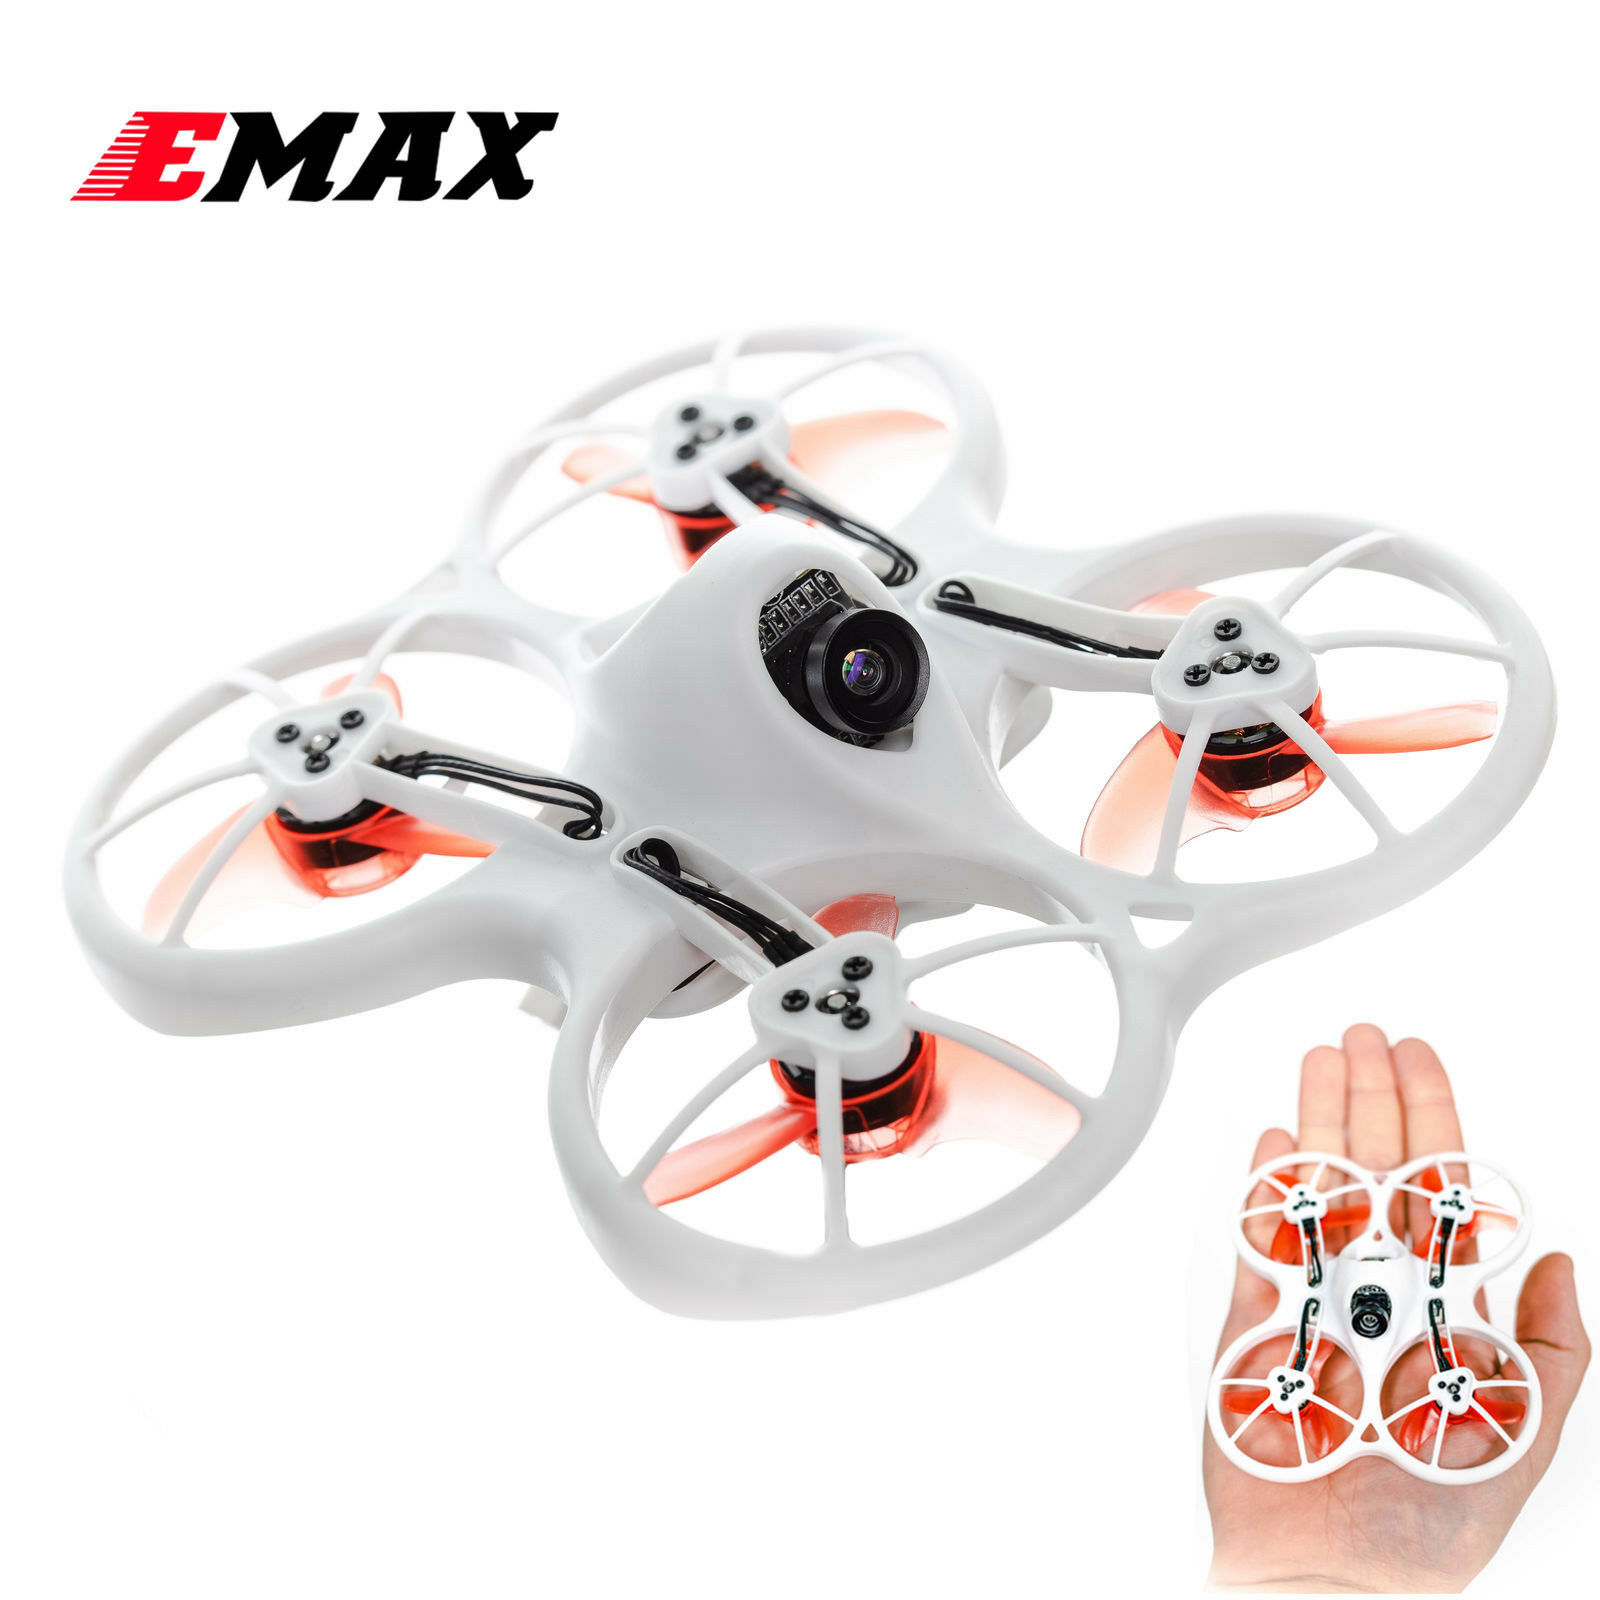 EMAX TINYHAWK 15000KV Brushless RC Drone Quadcopter BNF with 600TVL FPV Camera